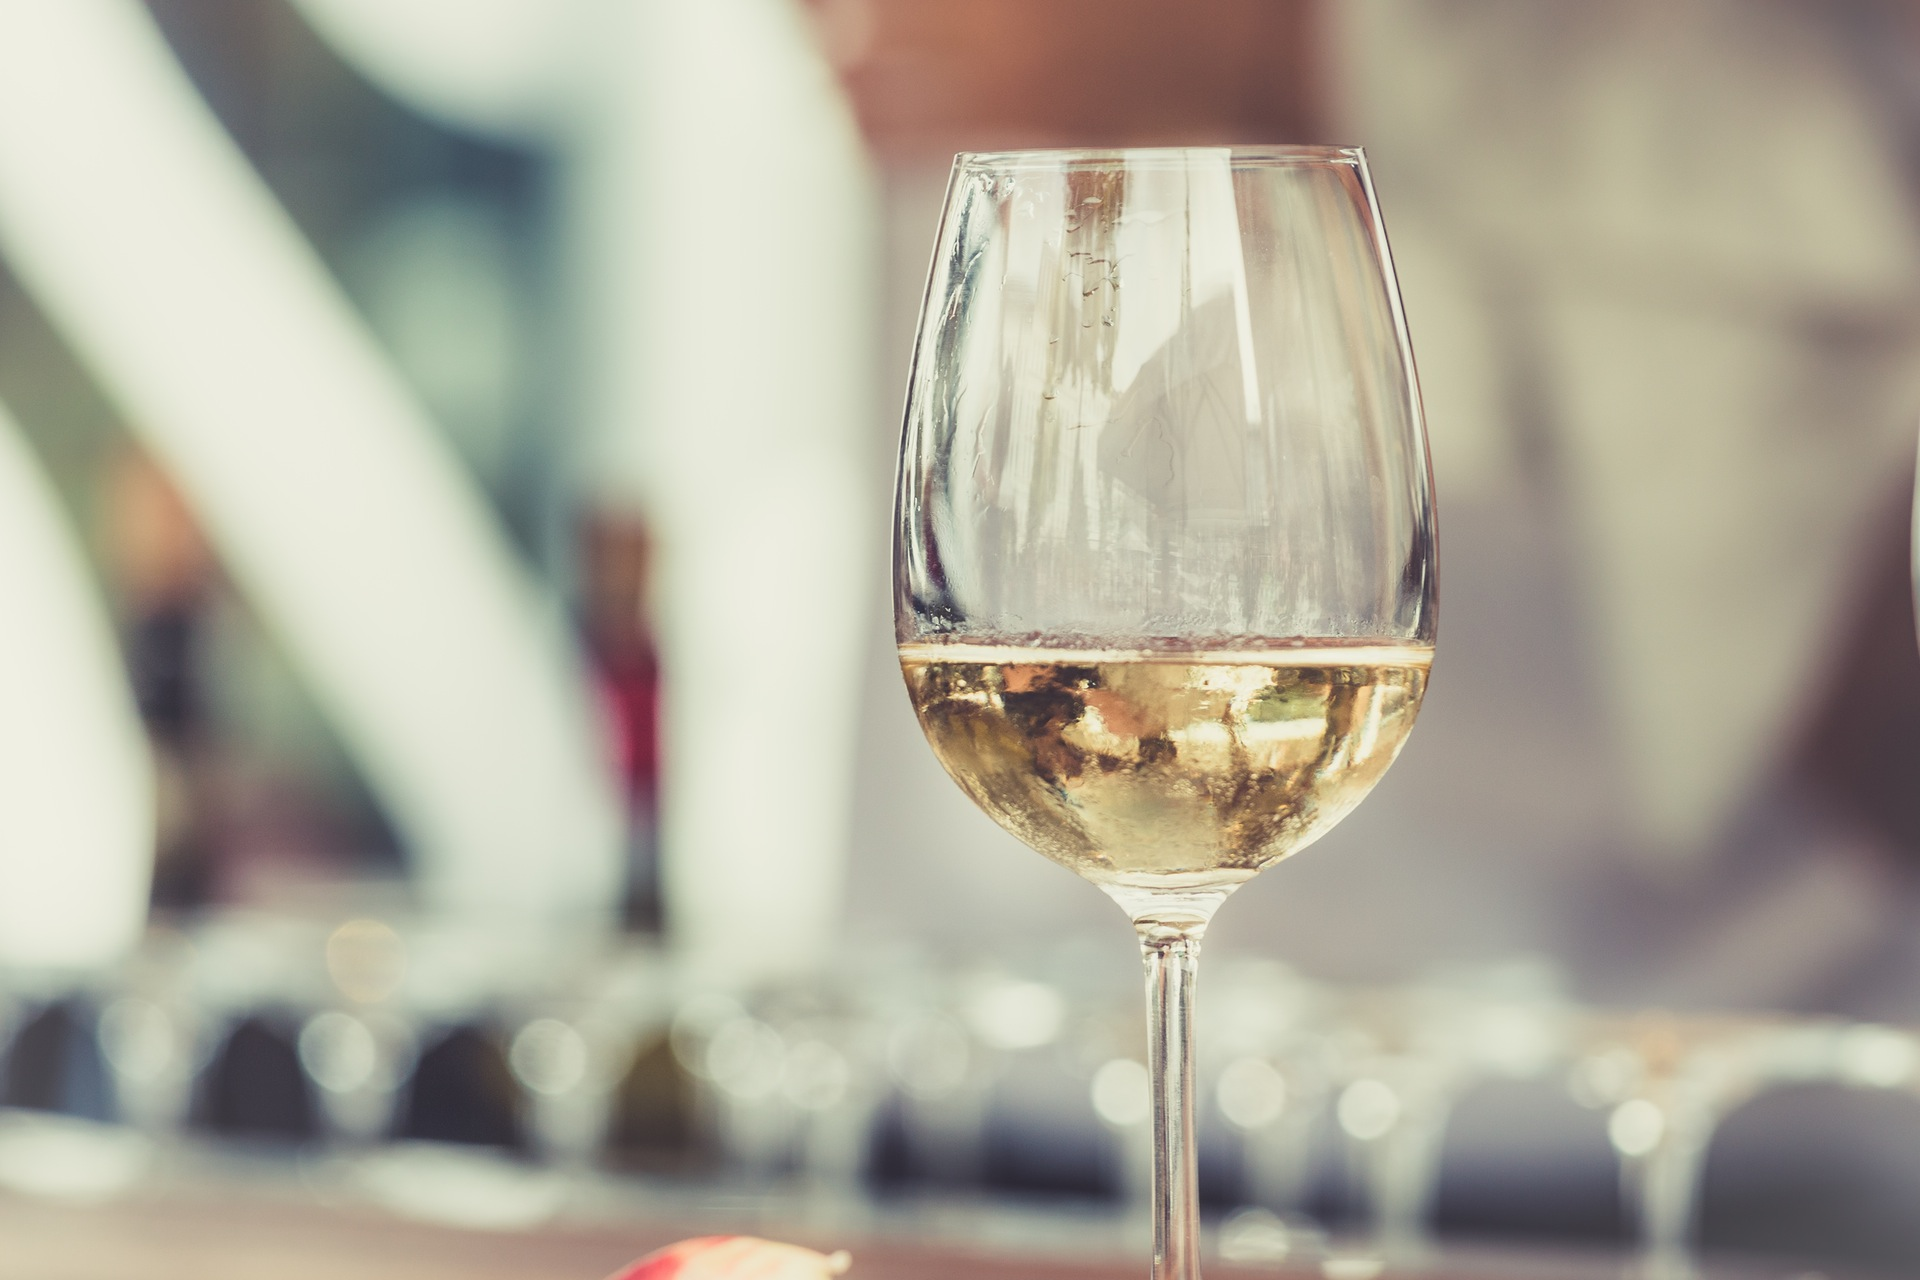 White wine might be linked to skin cancer